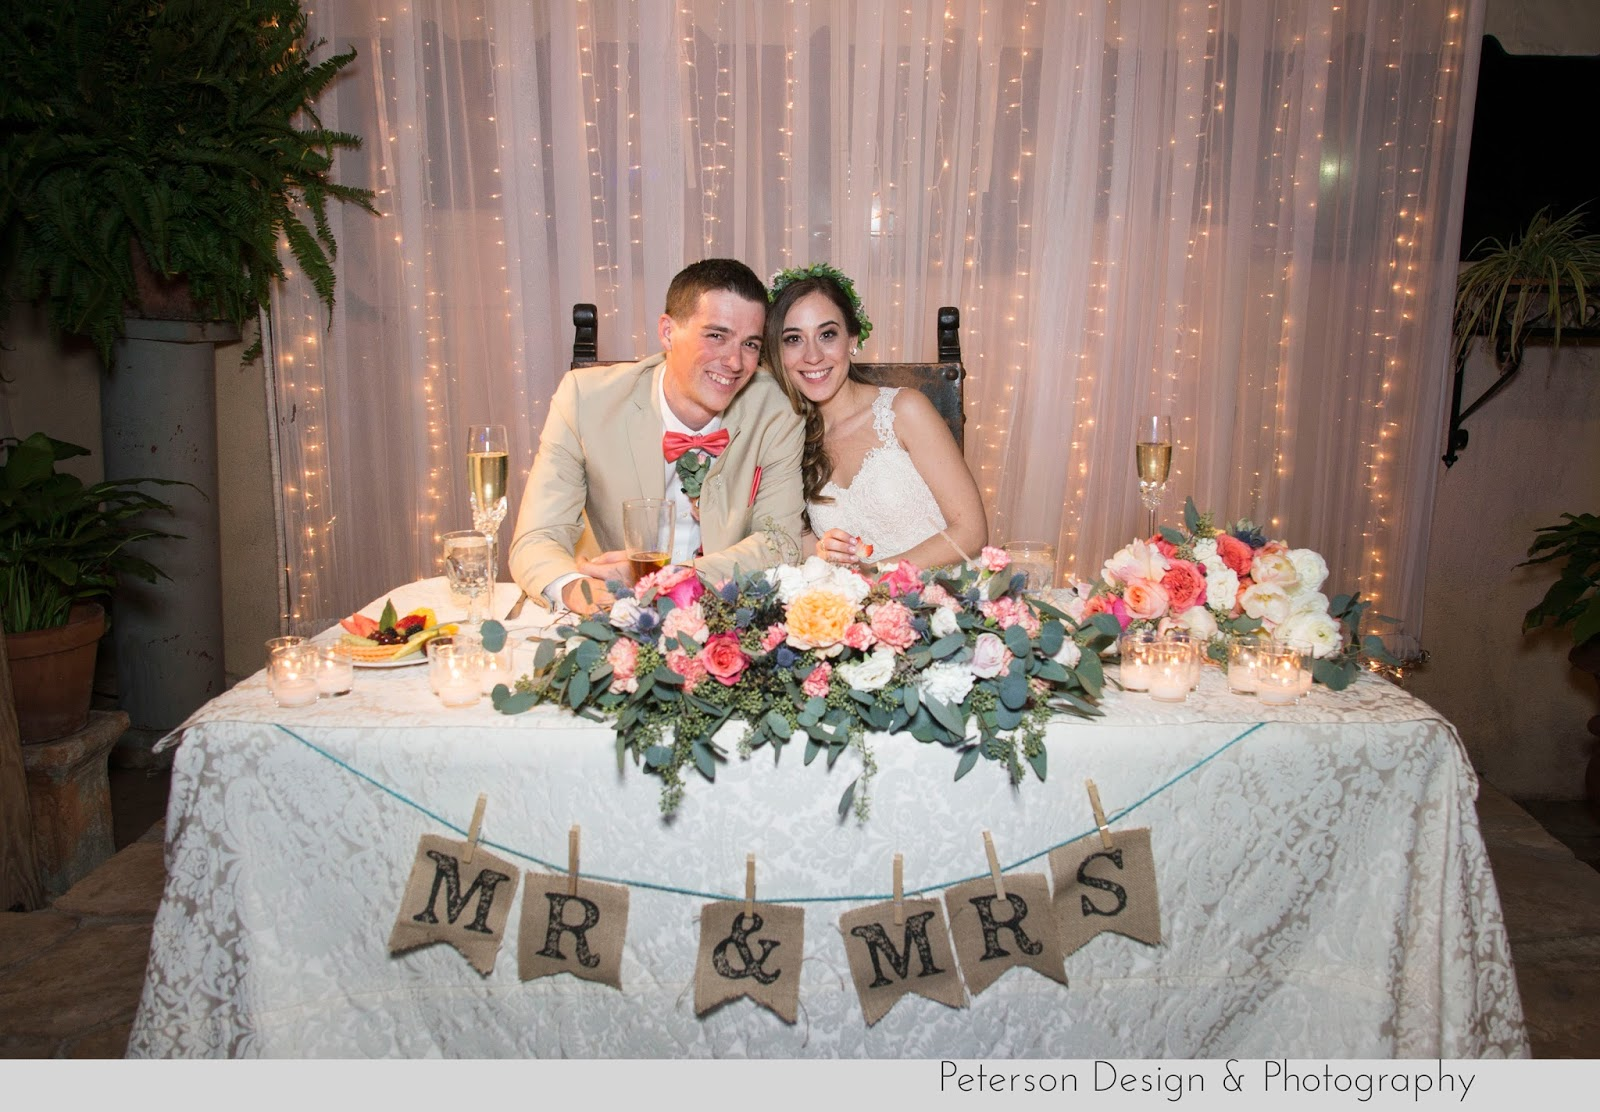 Mr. & Mrs. Sweet heart table at The Hacienda wedding orange county